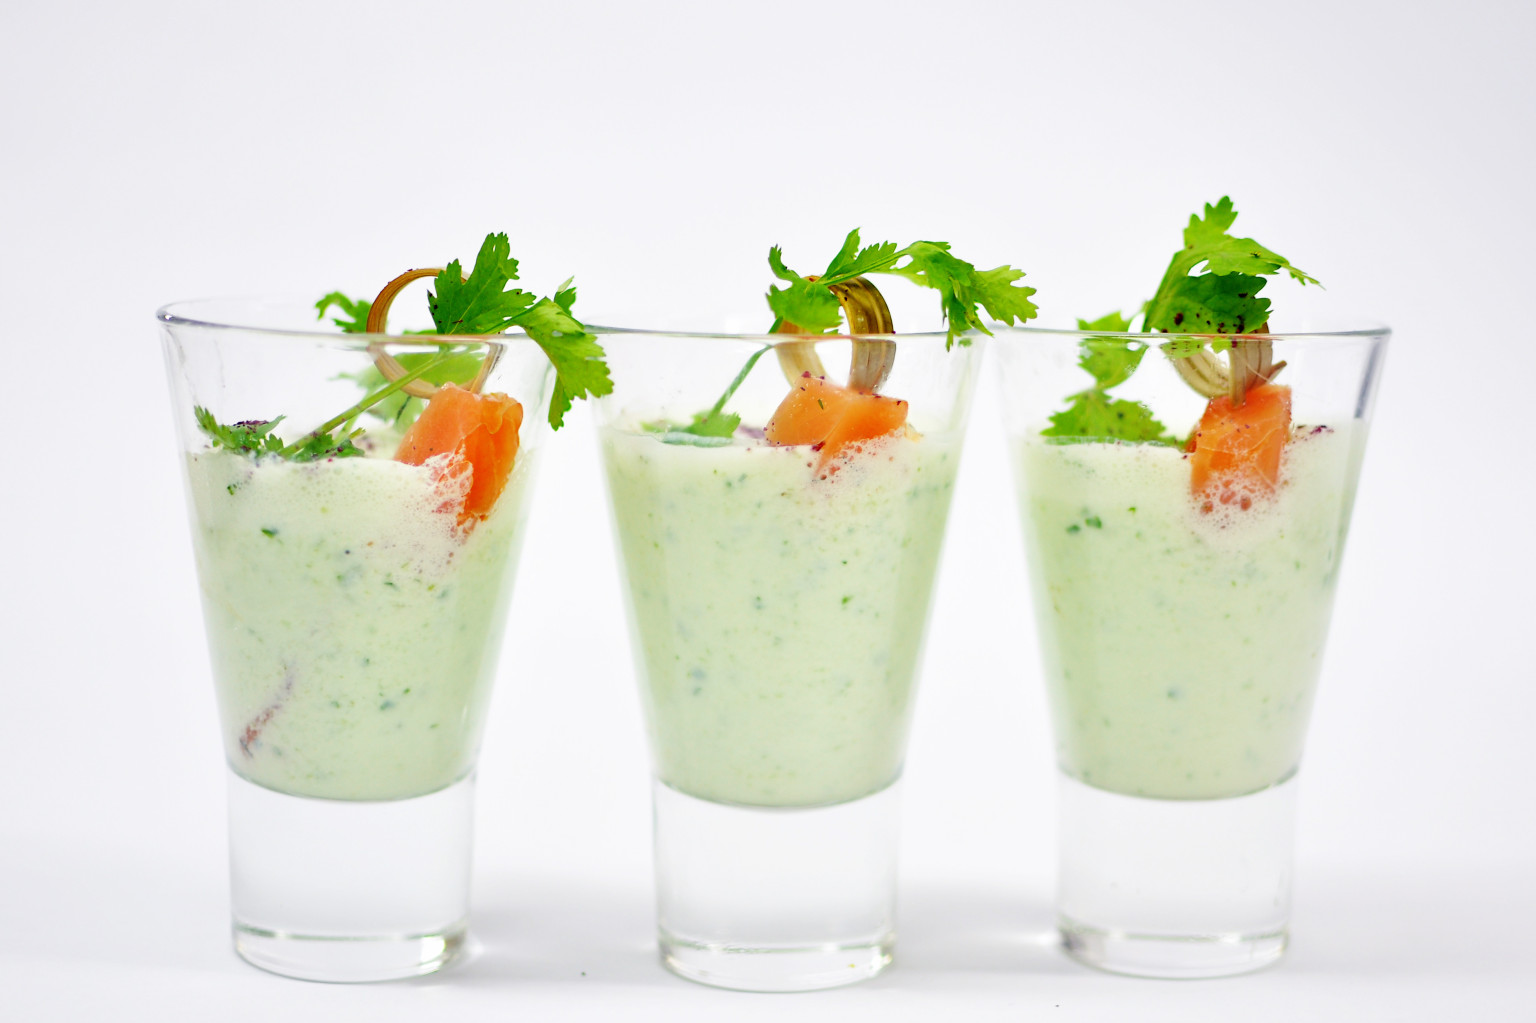 White Gazpacho: The Cold Cucumber Soup We Can't Stop Eating